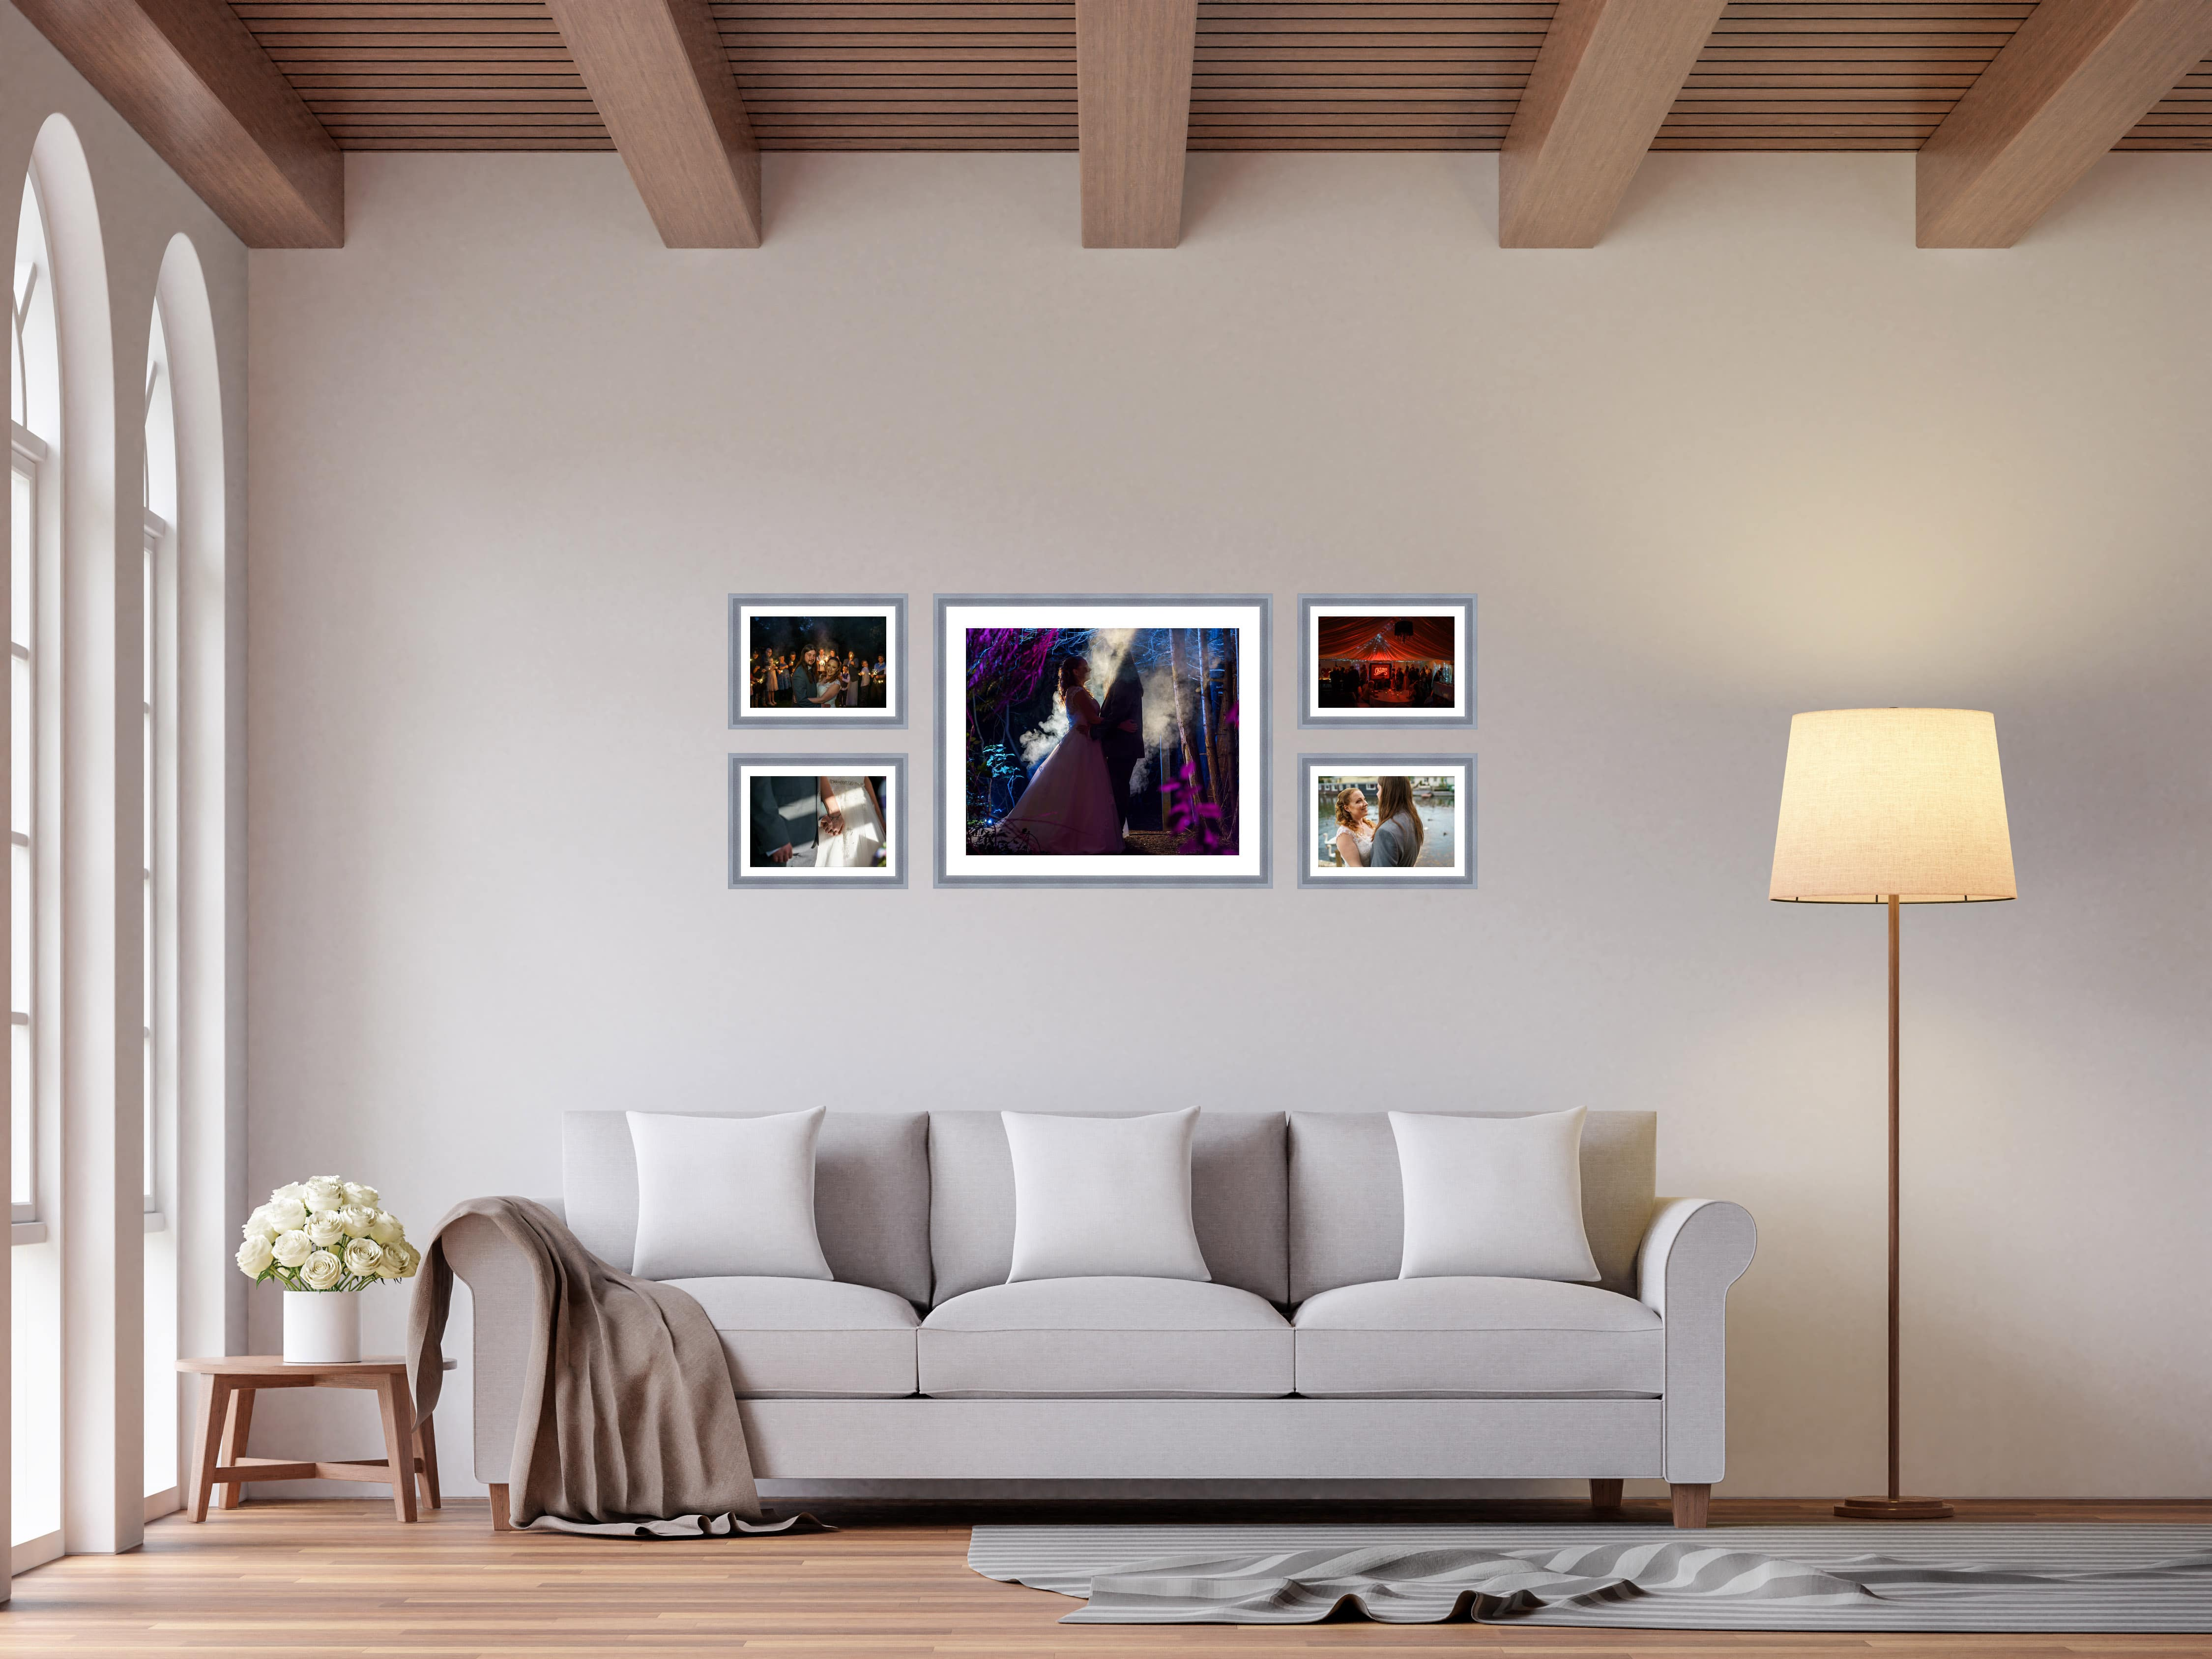 Scandinavian living room 3d rendering image.The Rooms have wooden floors and ceilings with white walls and arch windows.The room is furnished with light grey fabric sofas.